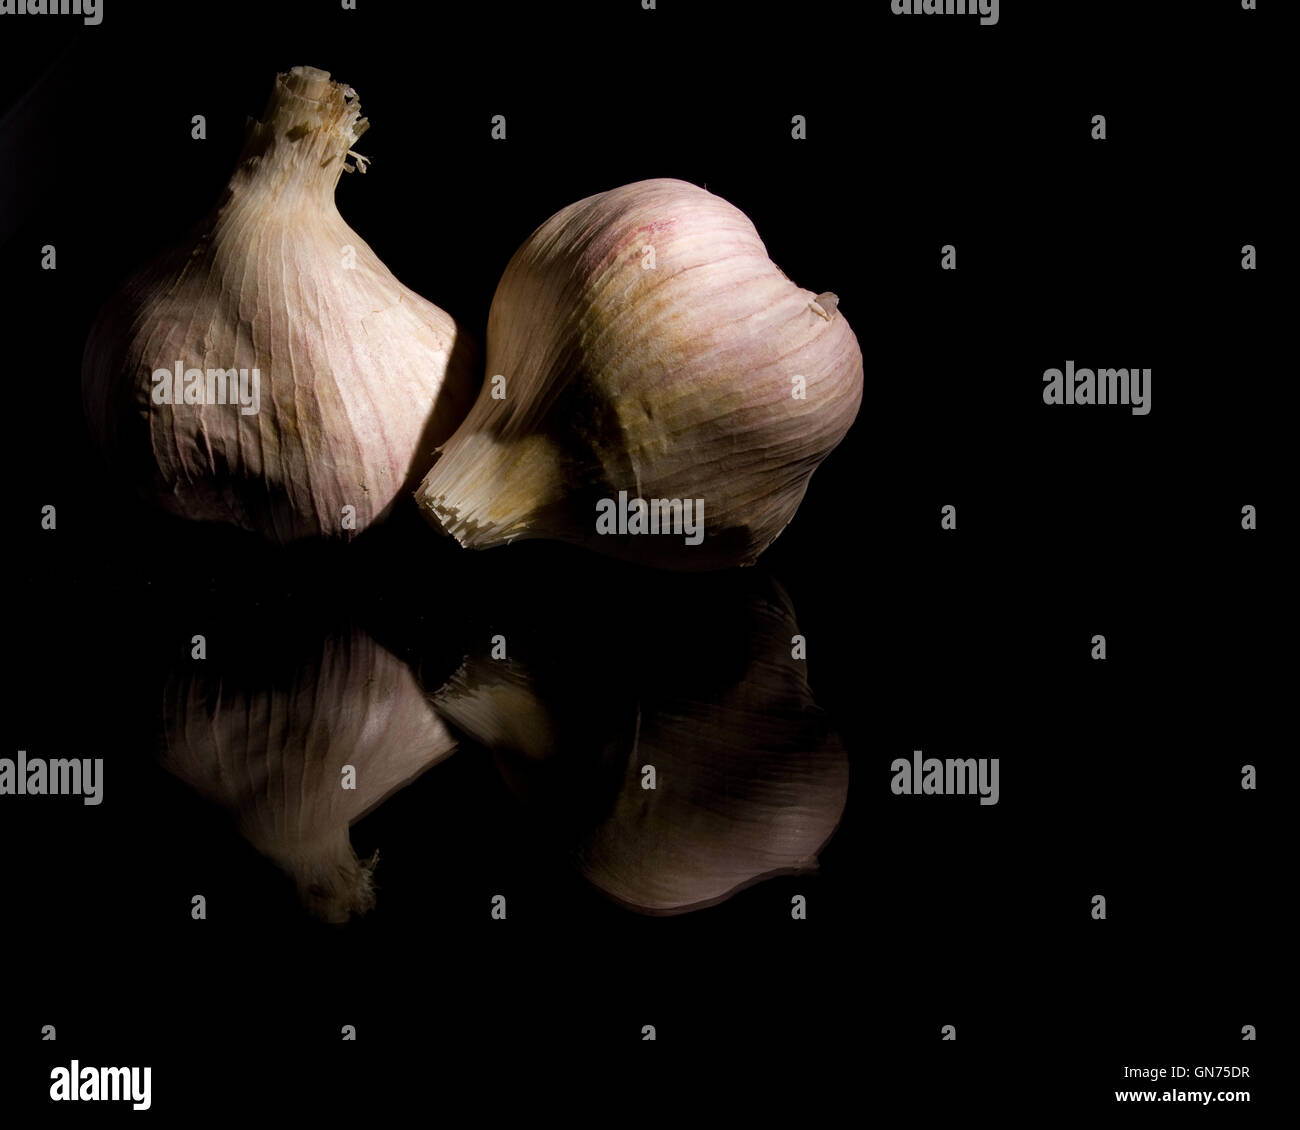 Close up of two Elephant Garlic bulbs on a black background - Stock Image